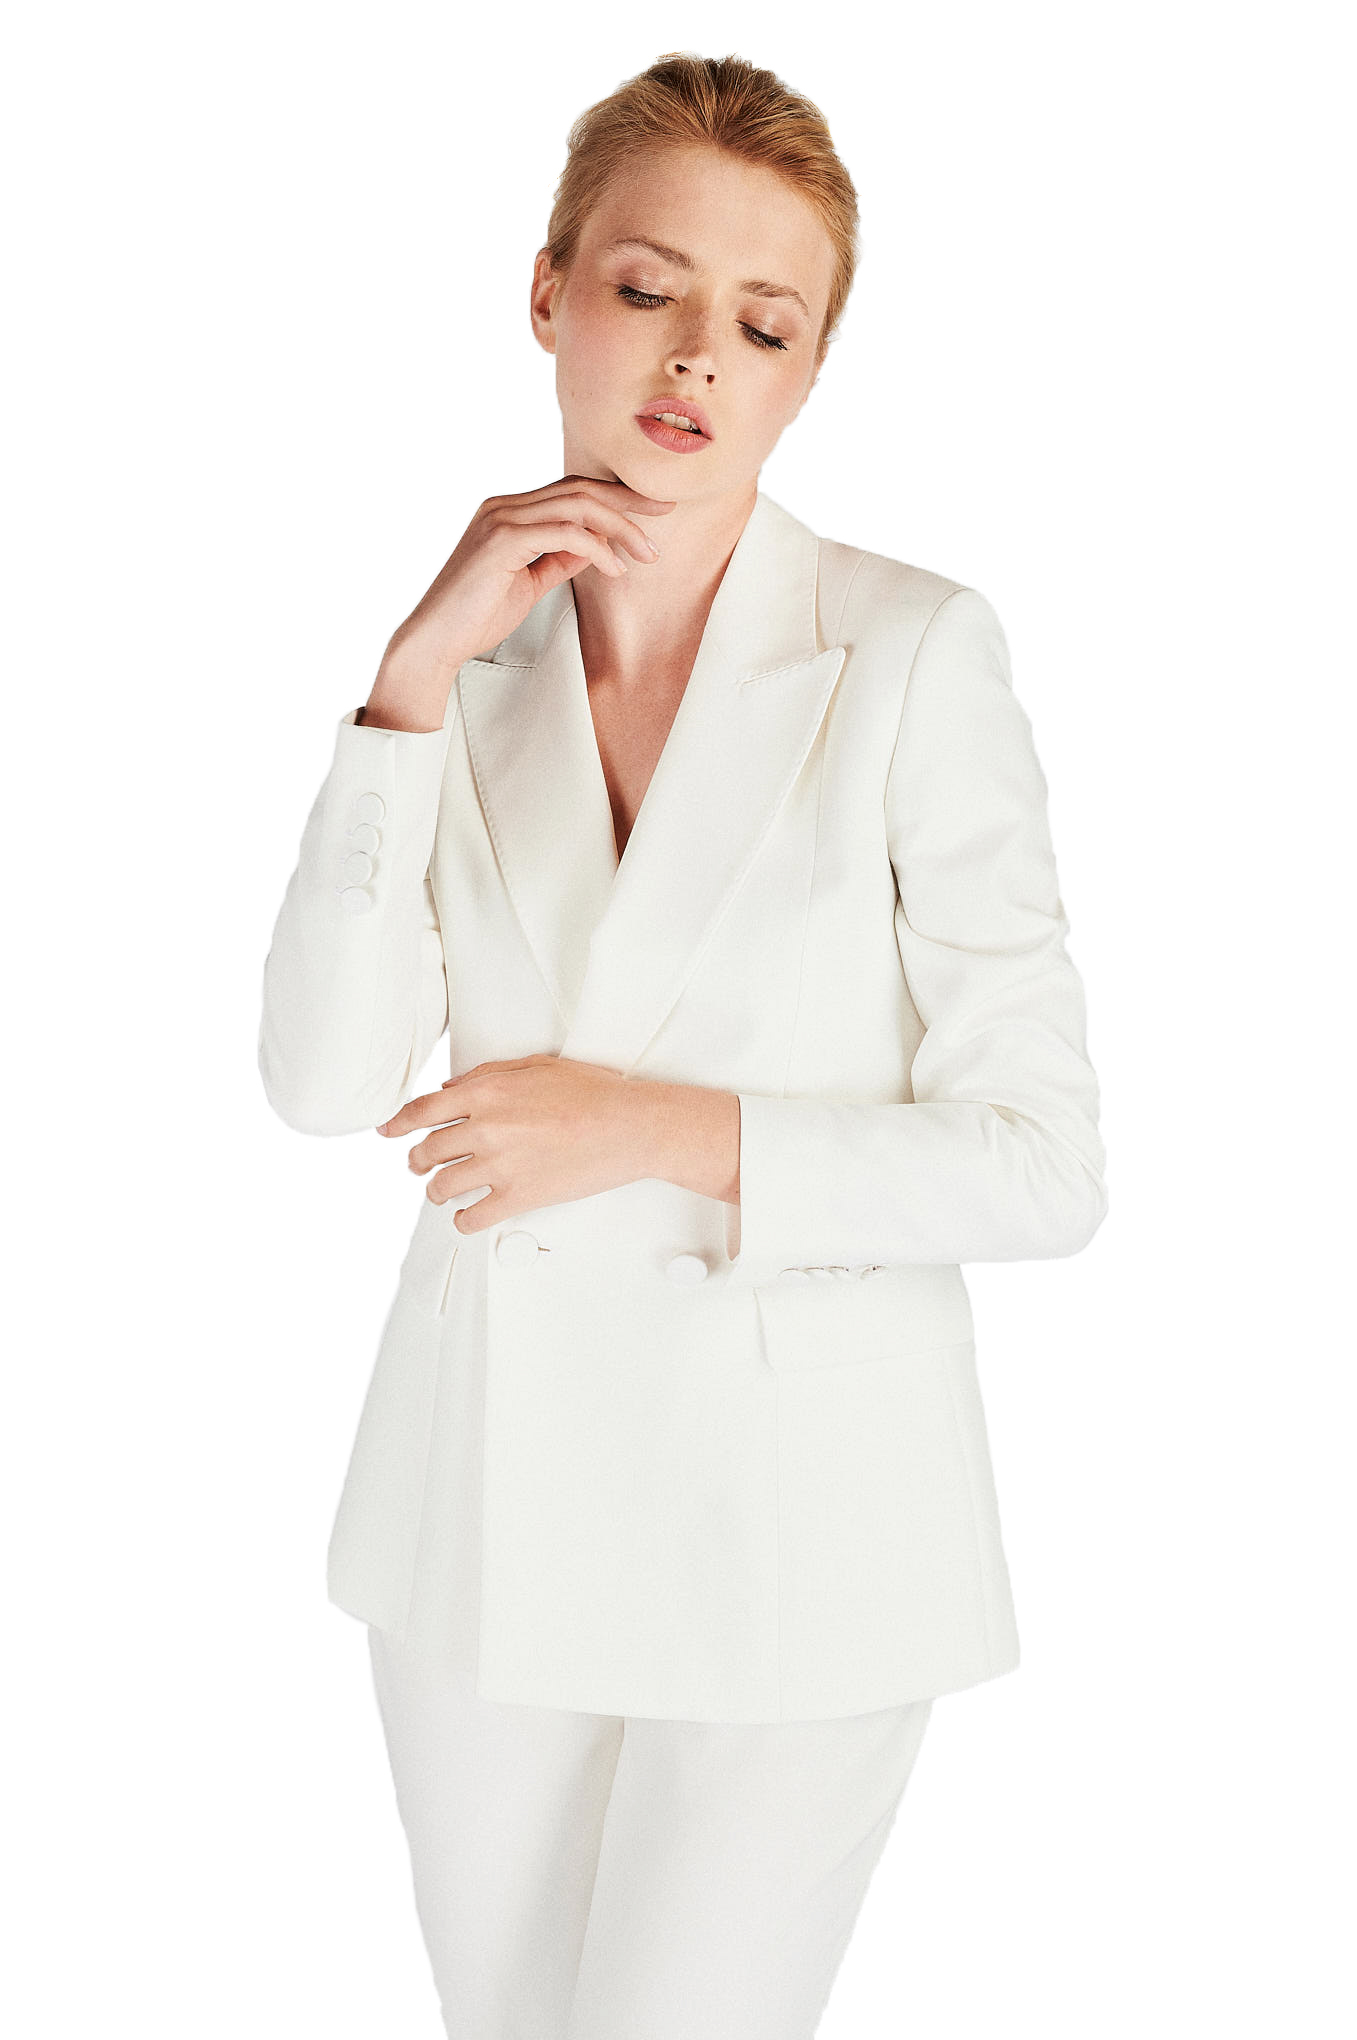 Suit White Classic Woman